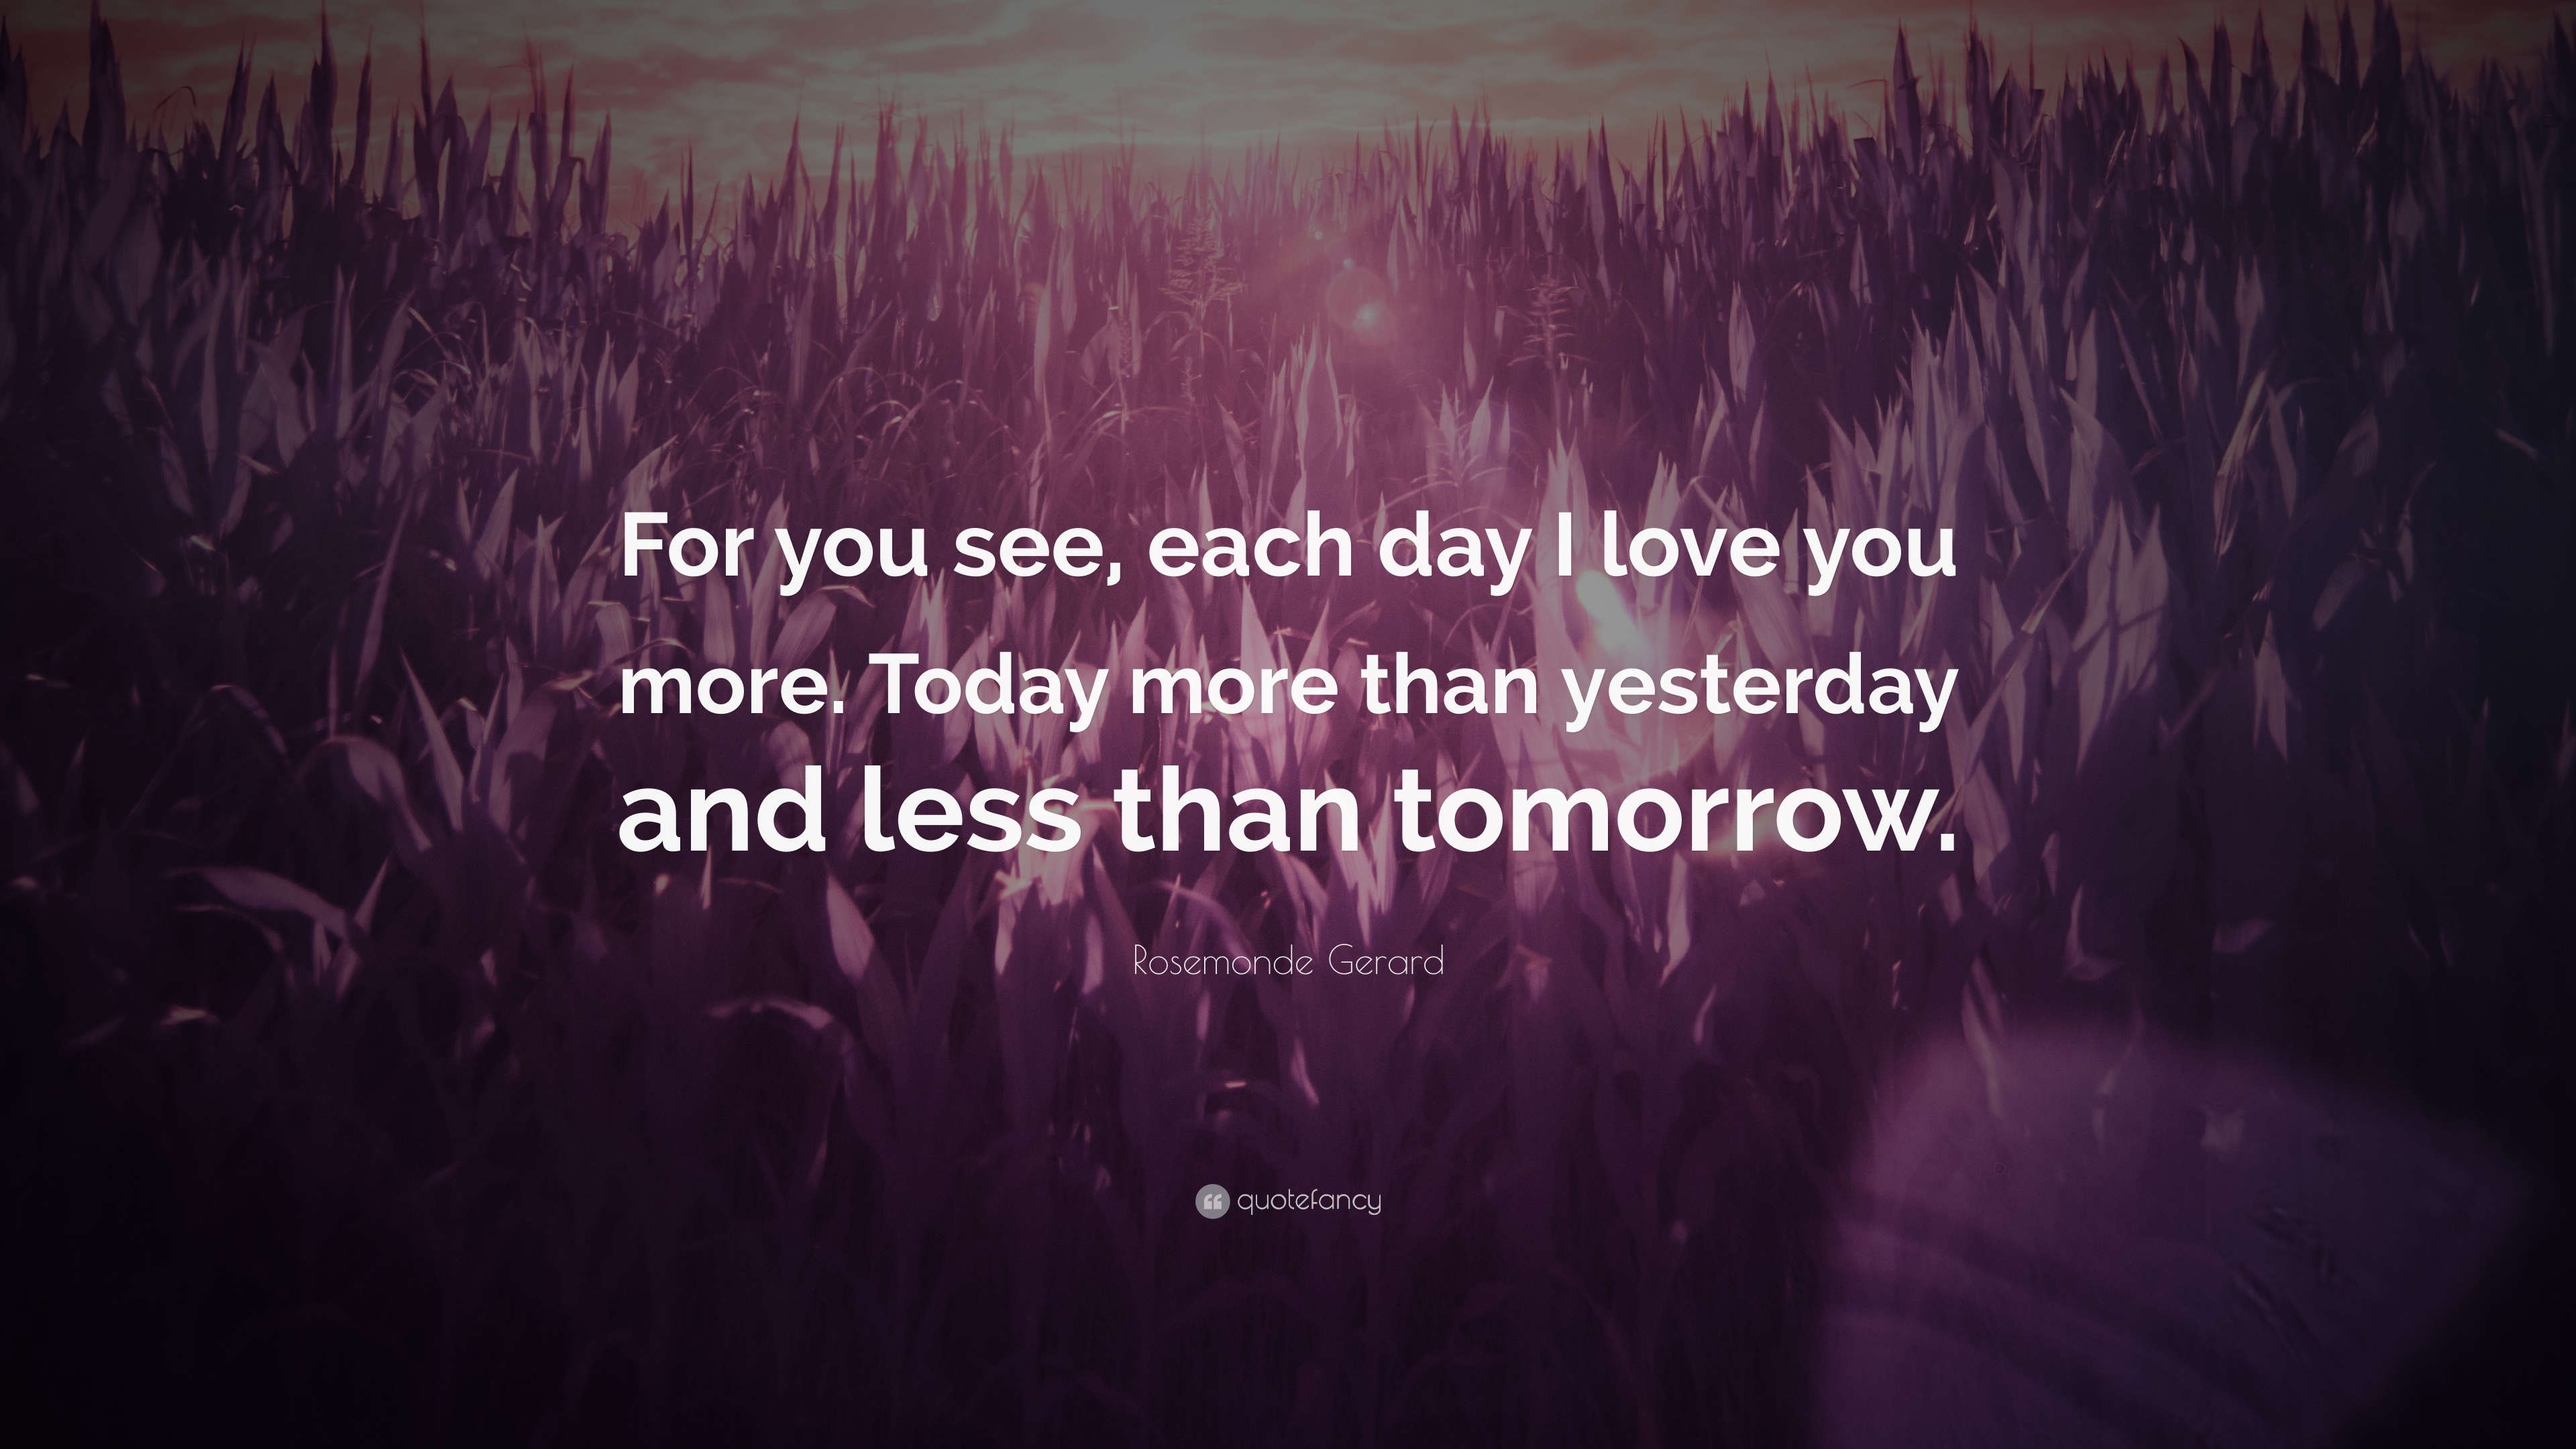 Rosemonde Gerard Quote For You See Each Day I Love You More